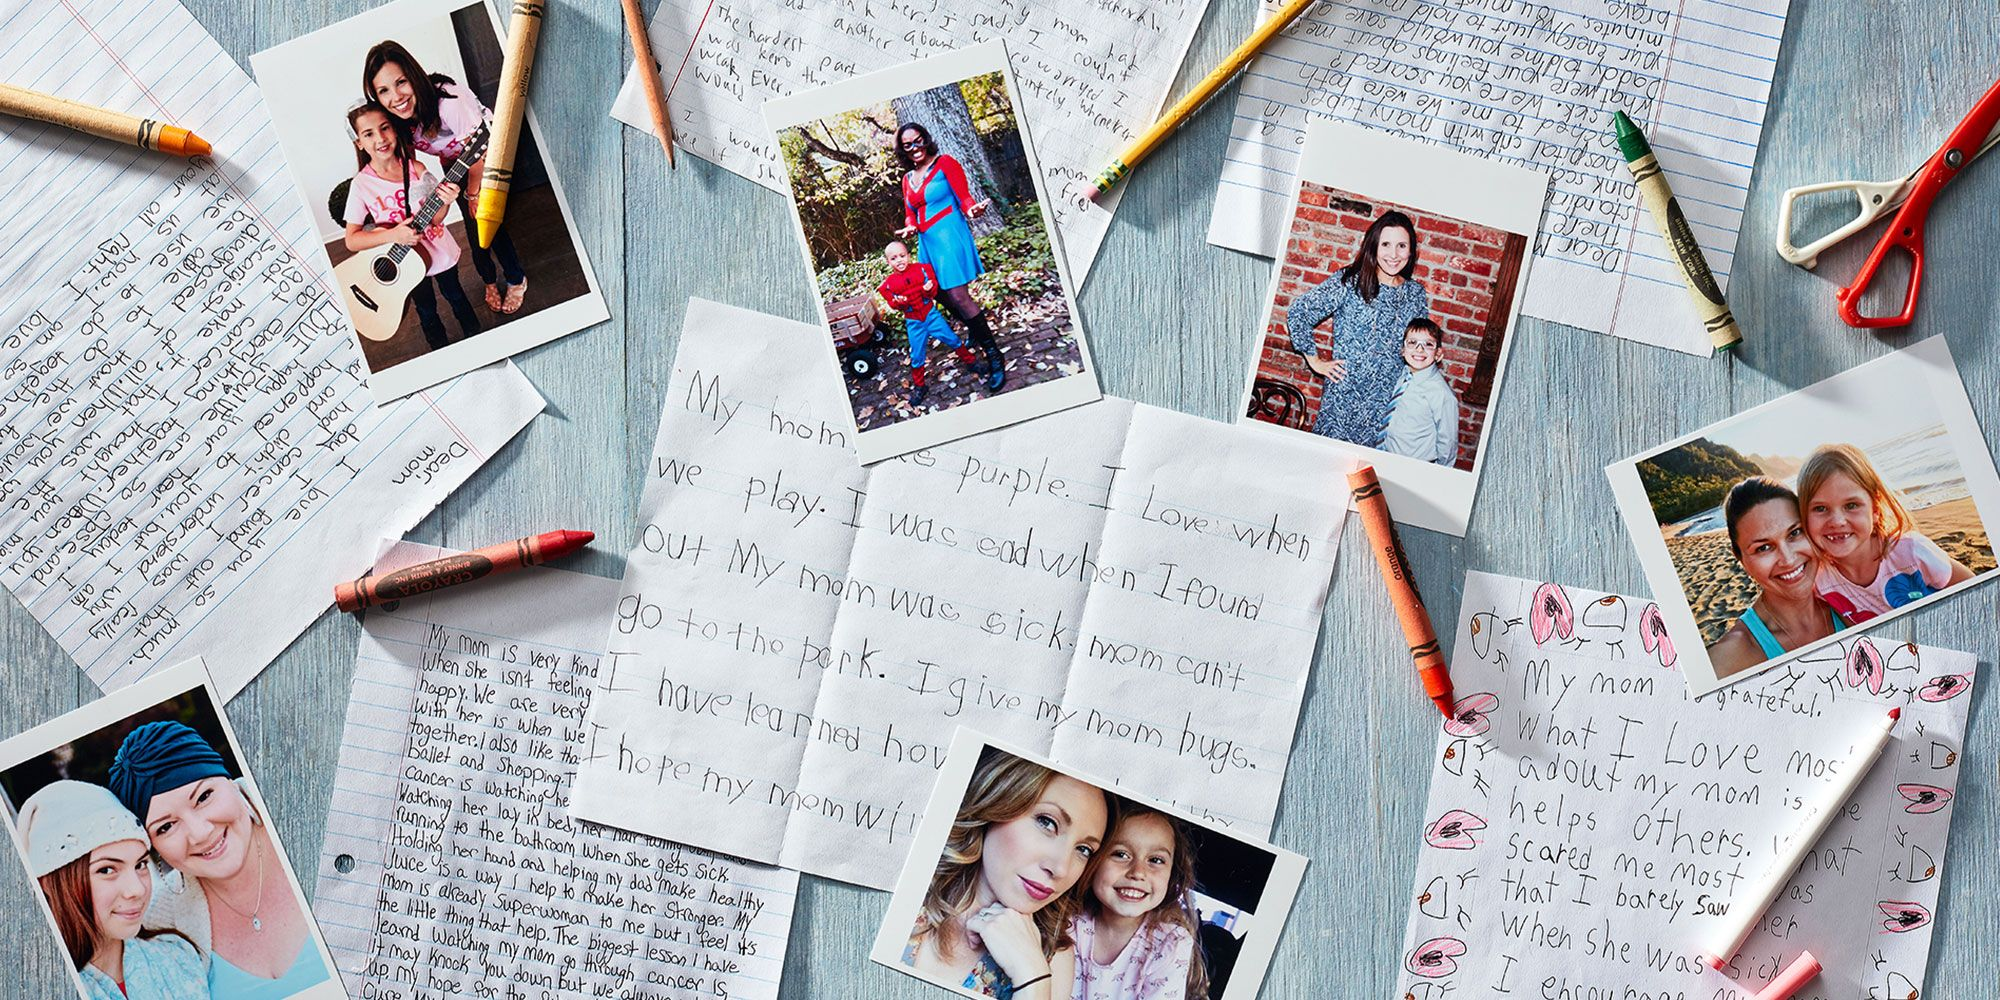 Kids on Their Parents Cancer Kids Letters to Parents